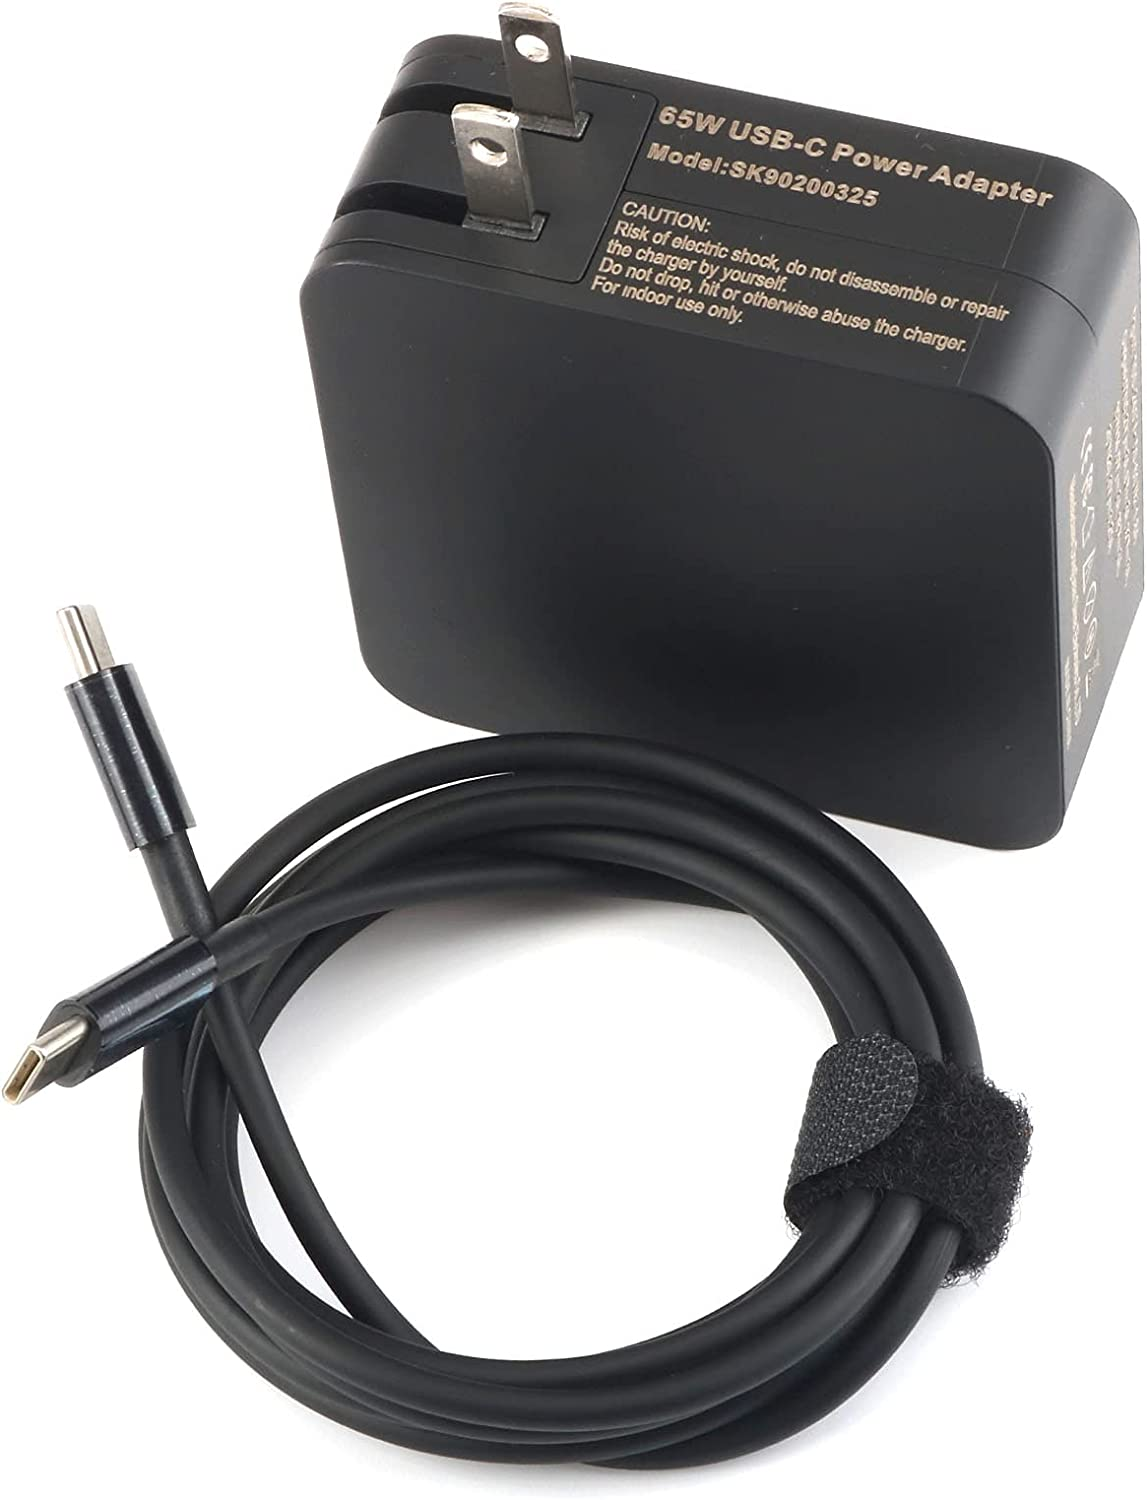 65W New mail order Type C Charger Power Adapter 100e 300e Max 64% OFF Lenovo Chromebook for